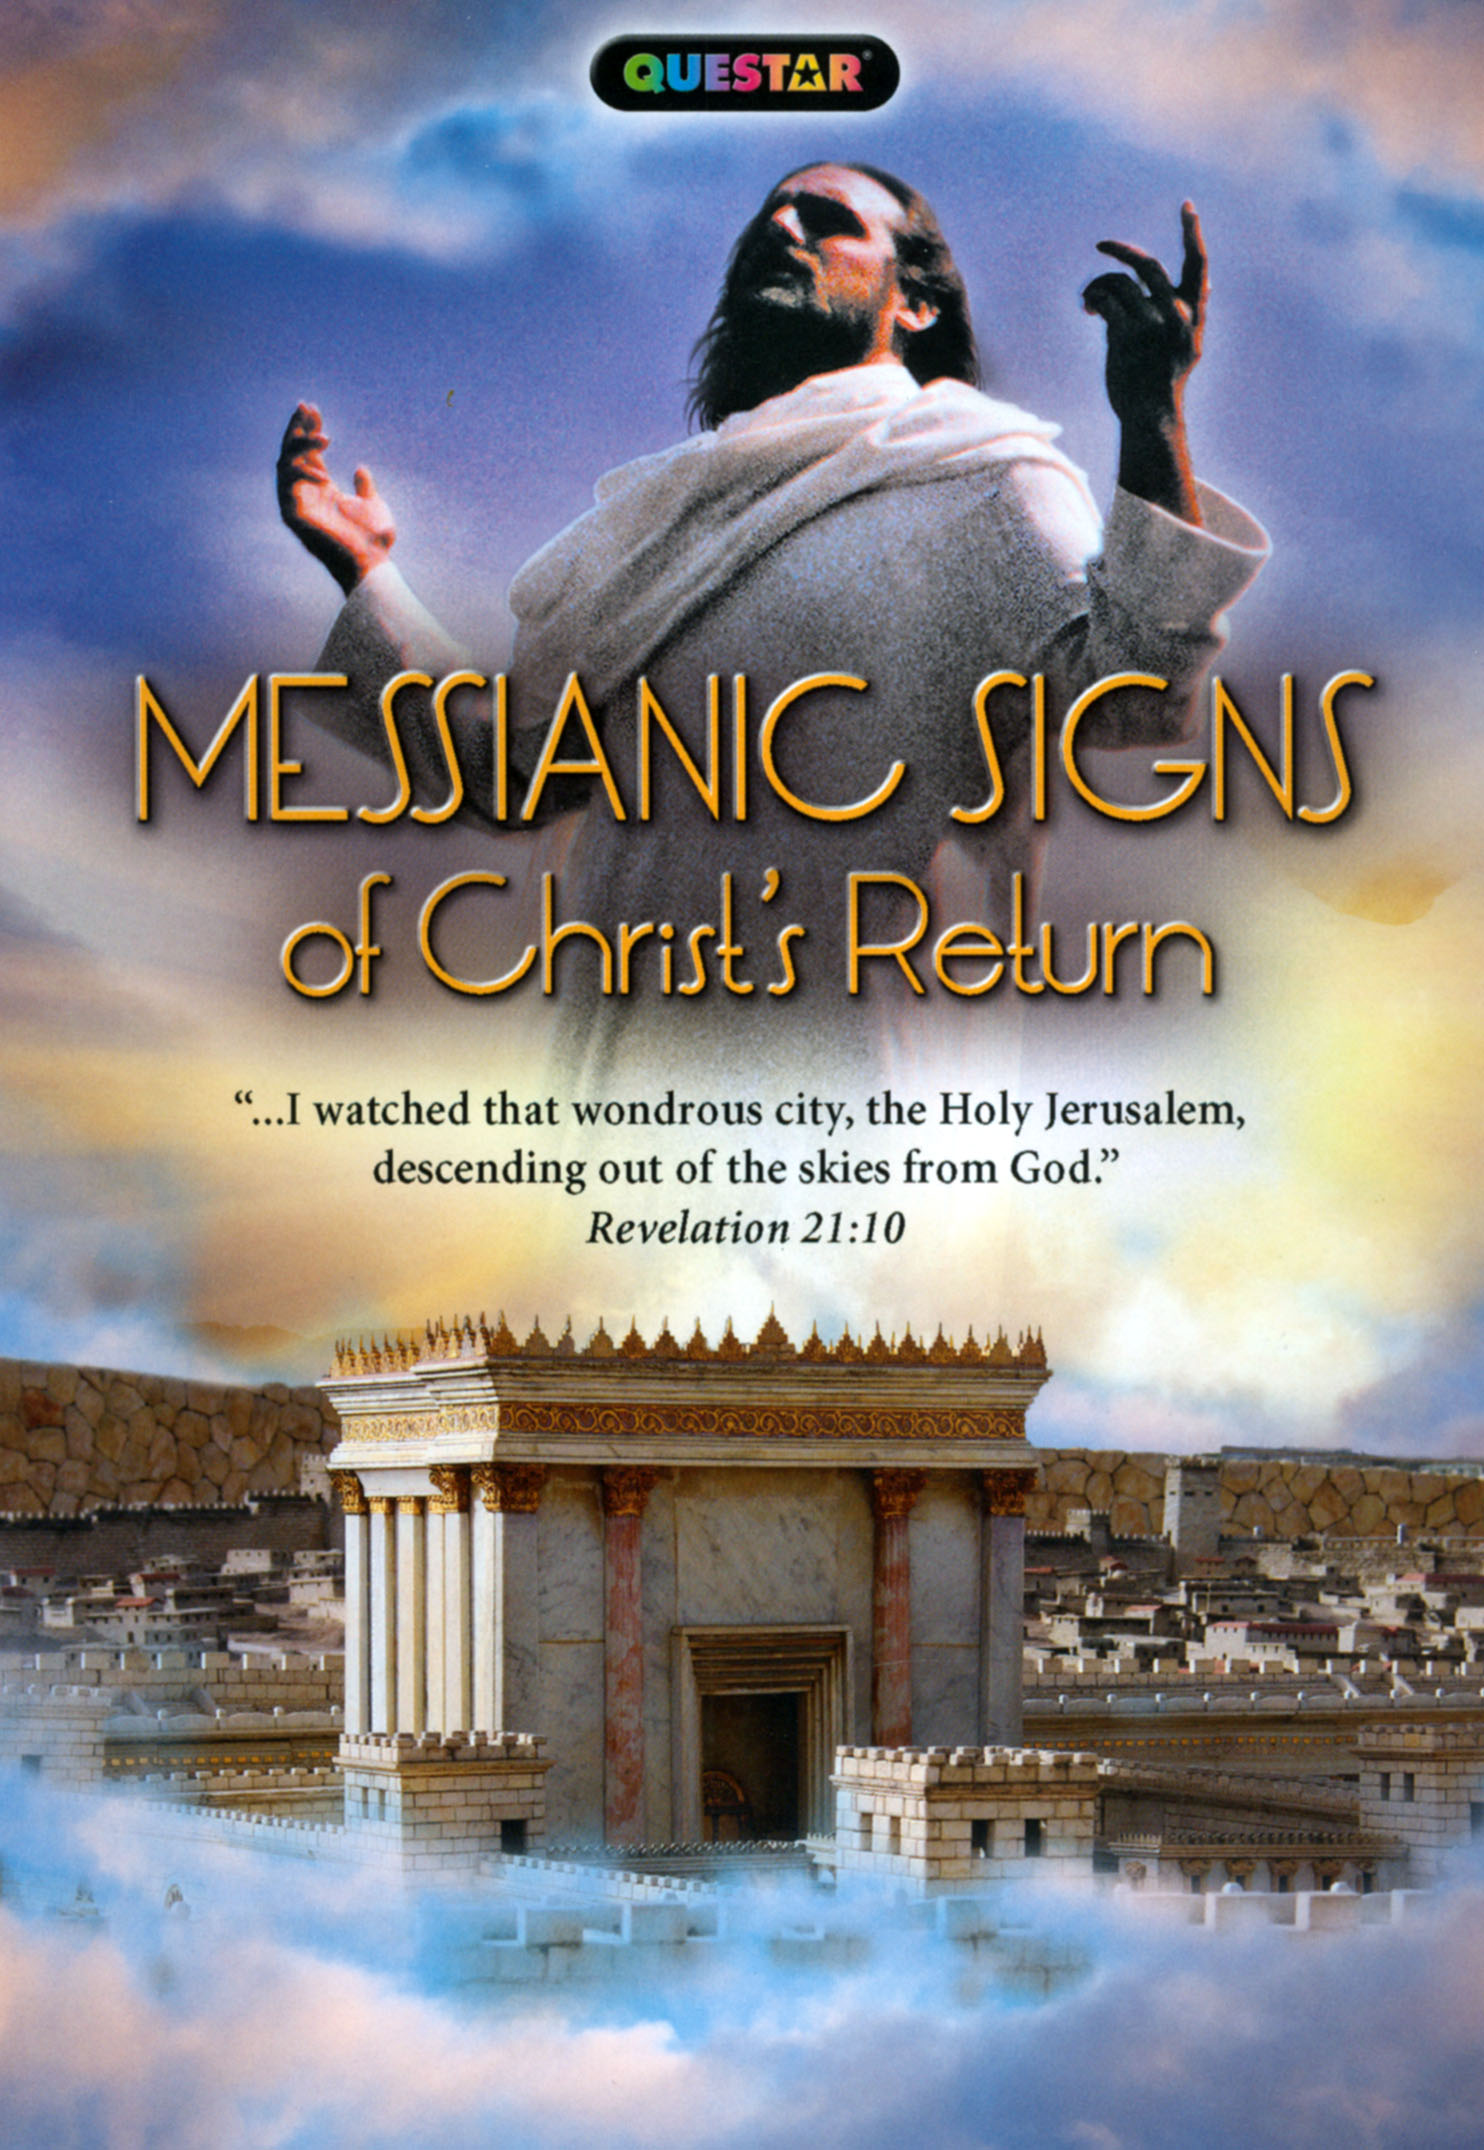 Messianic Signs of Christ's Return